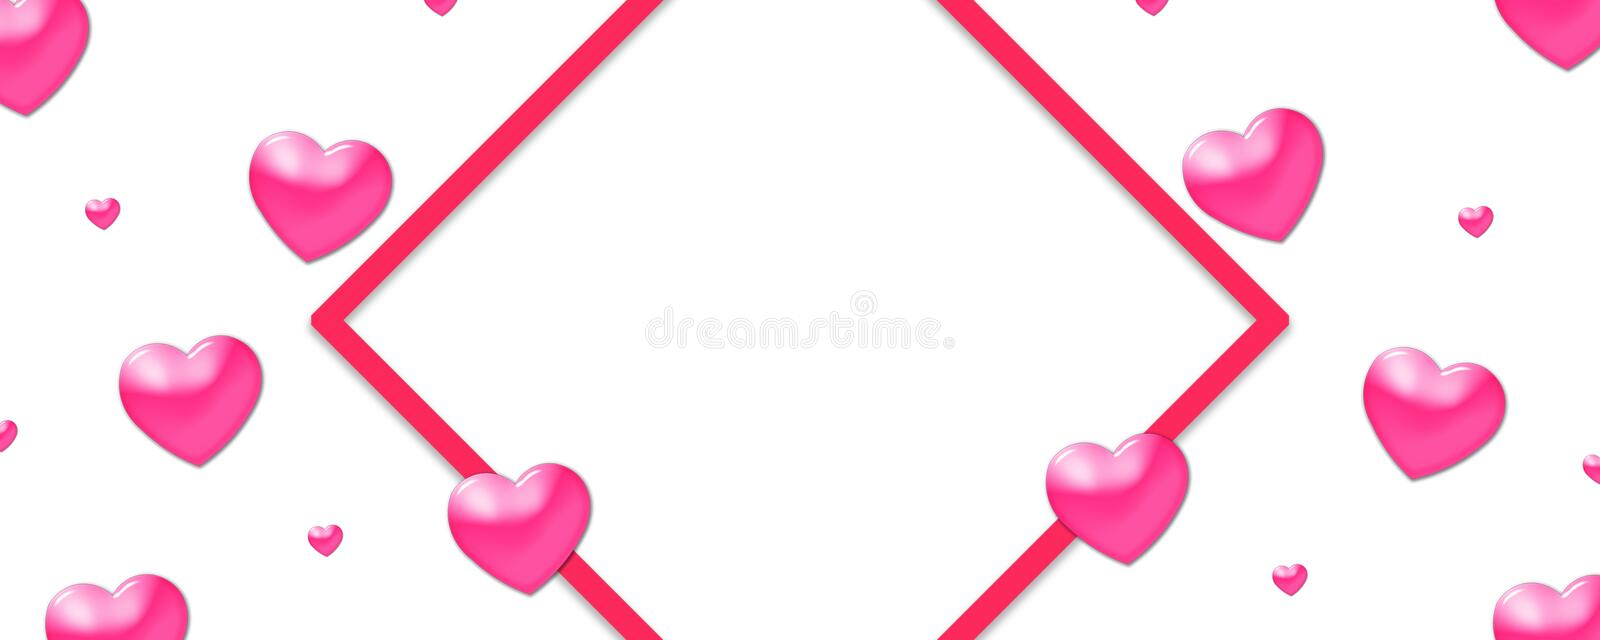 Valentines design, colorful hearts on white background with border and copy space. Valentine's Day vector illustration